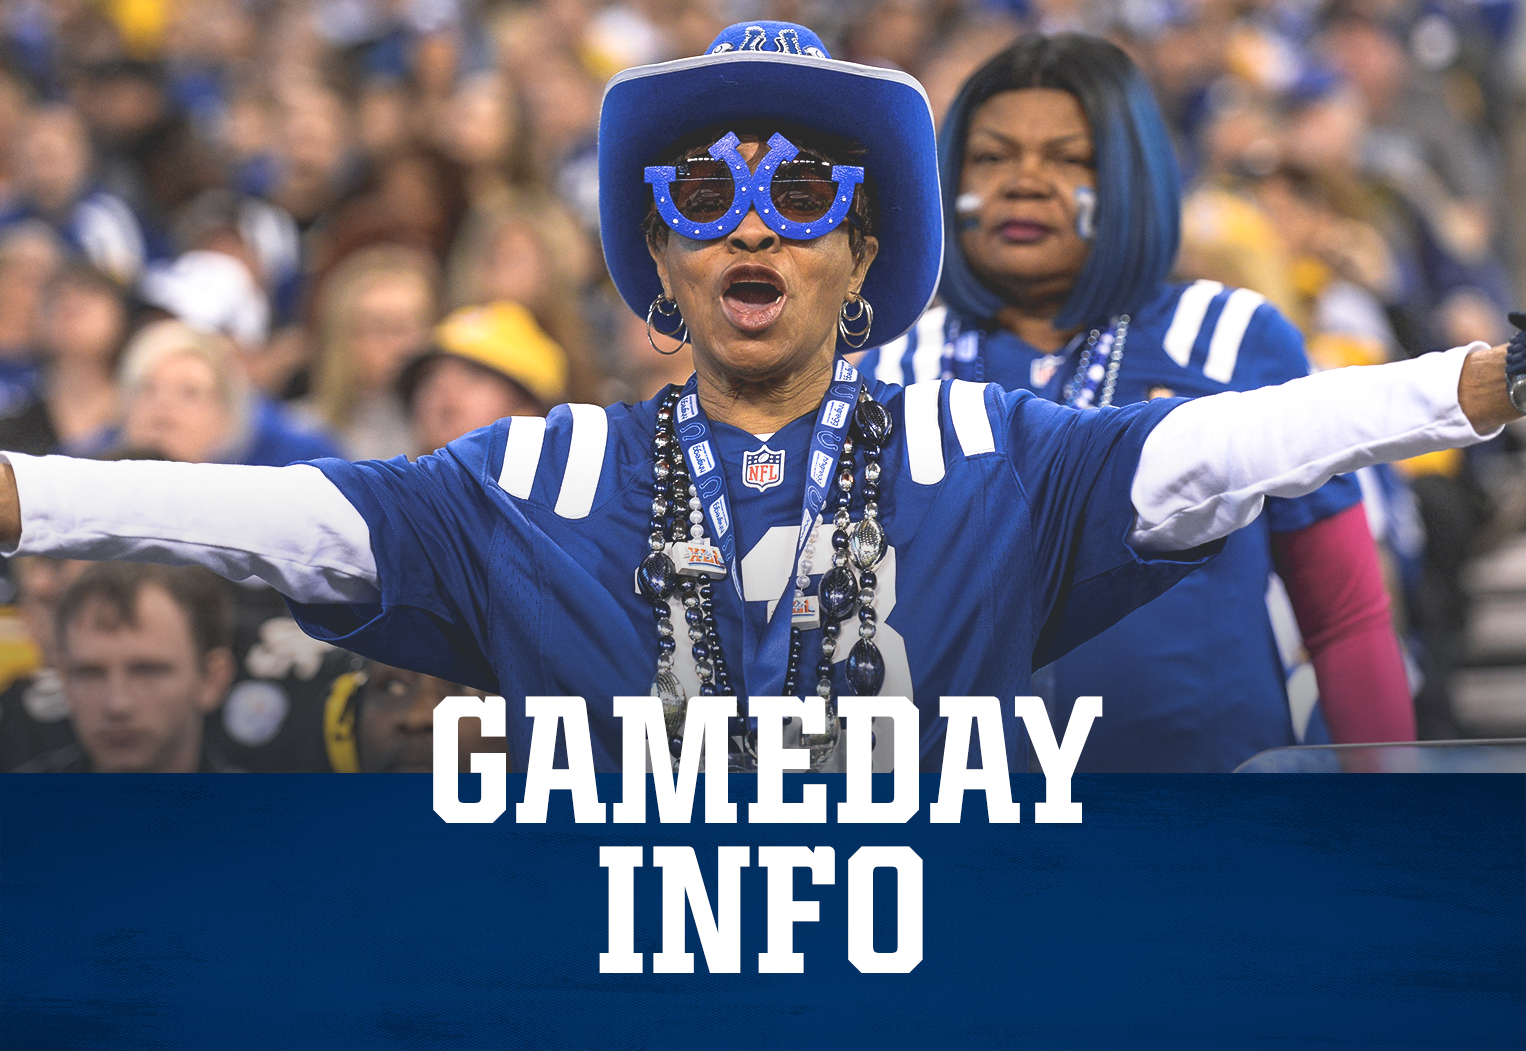 Indianapolis Colts Gameday Info